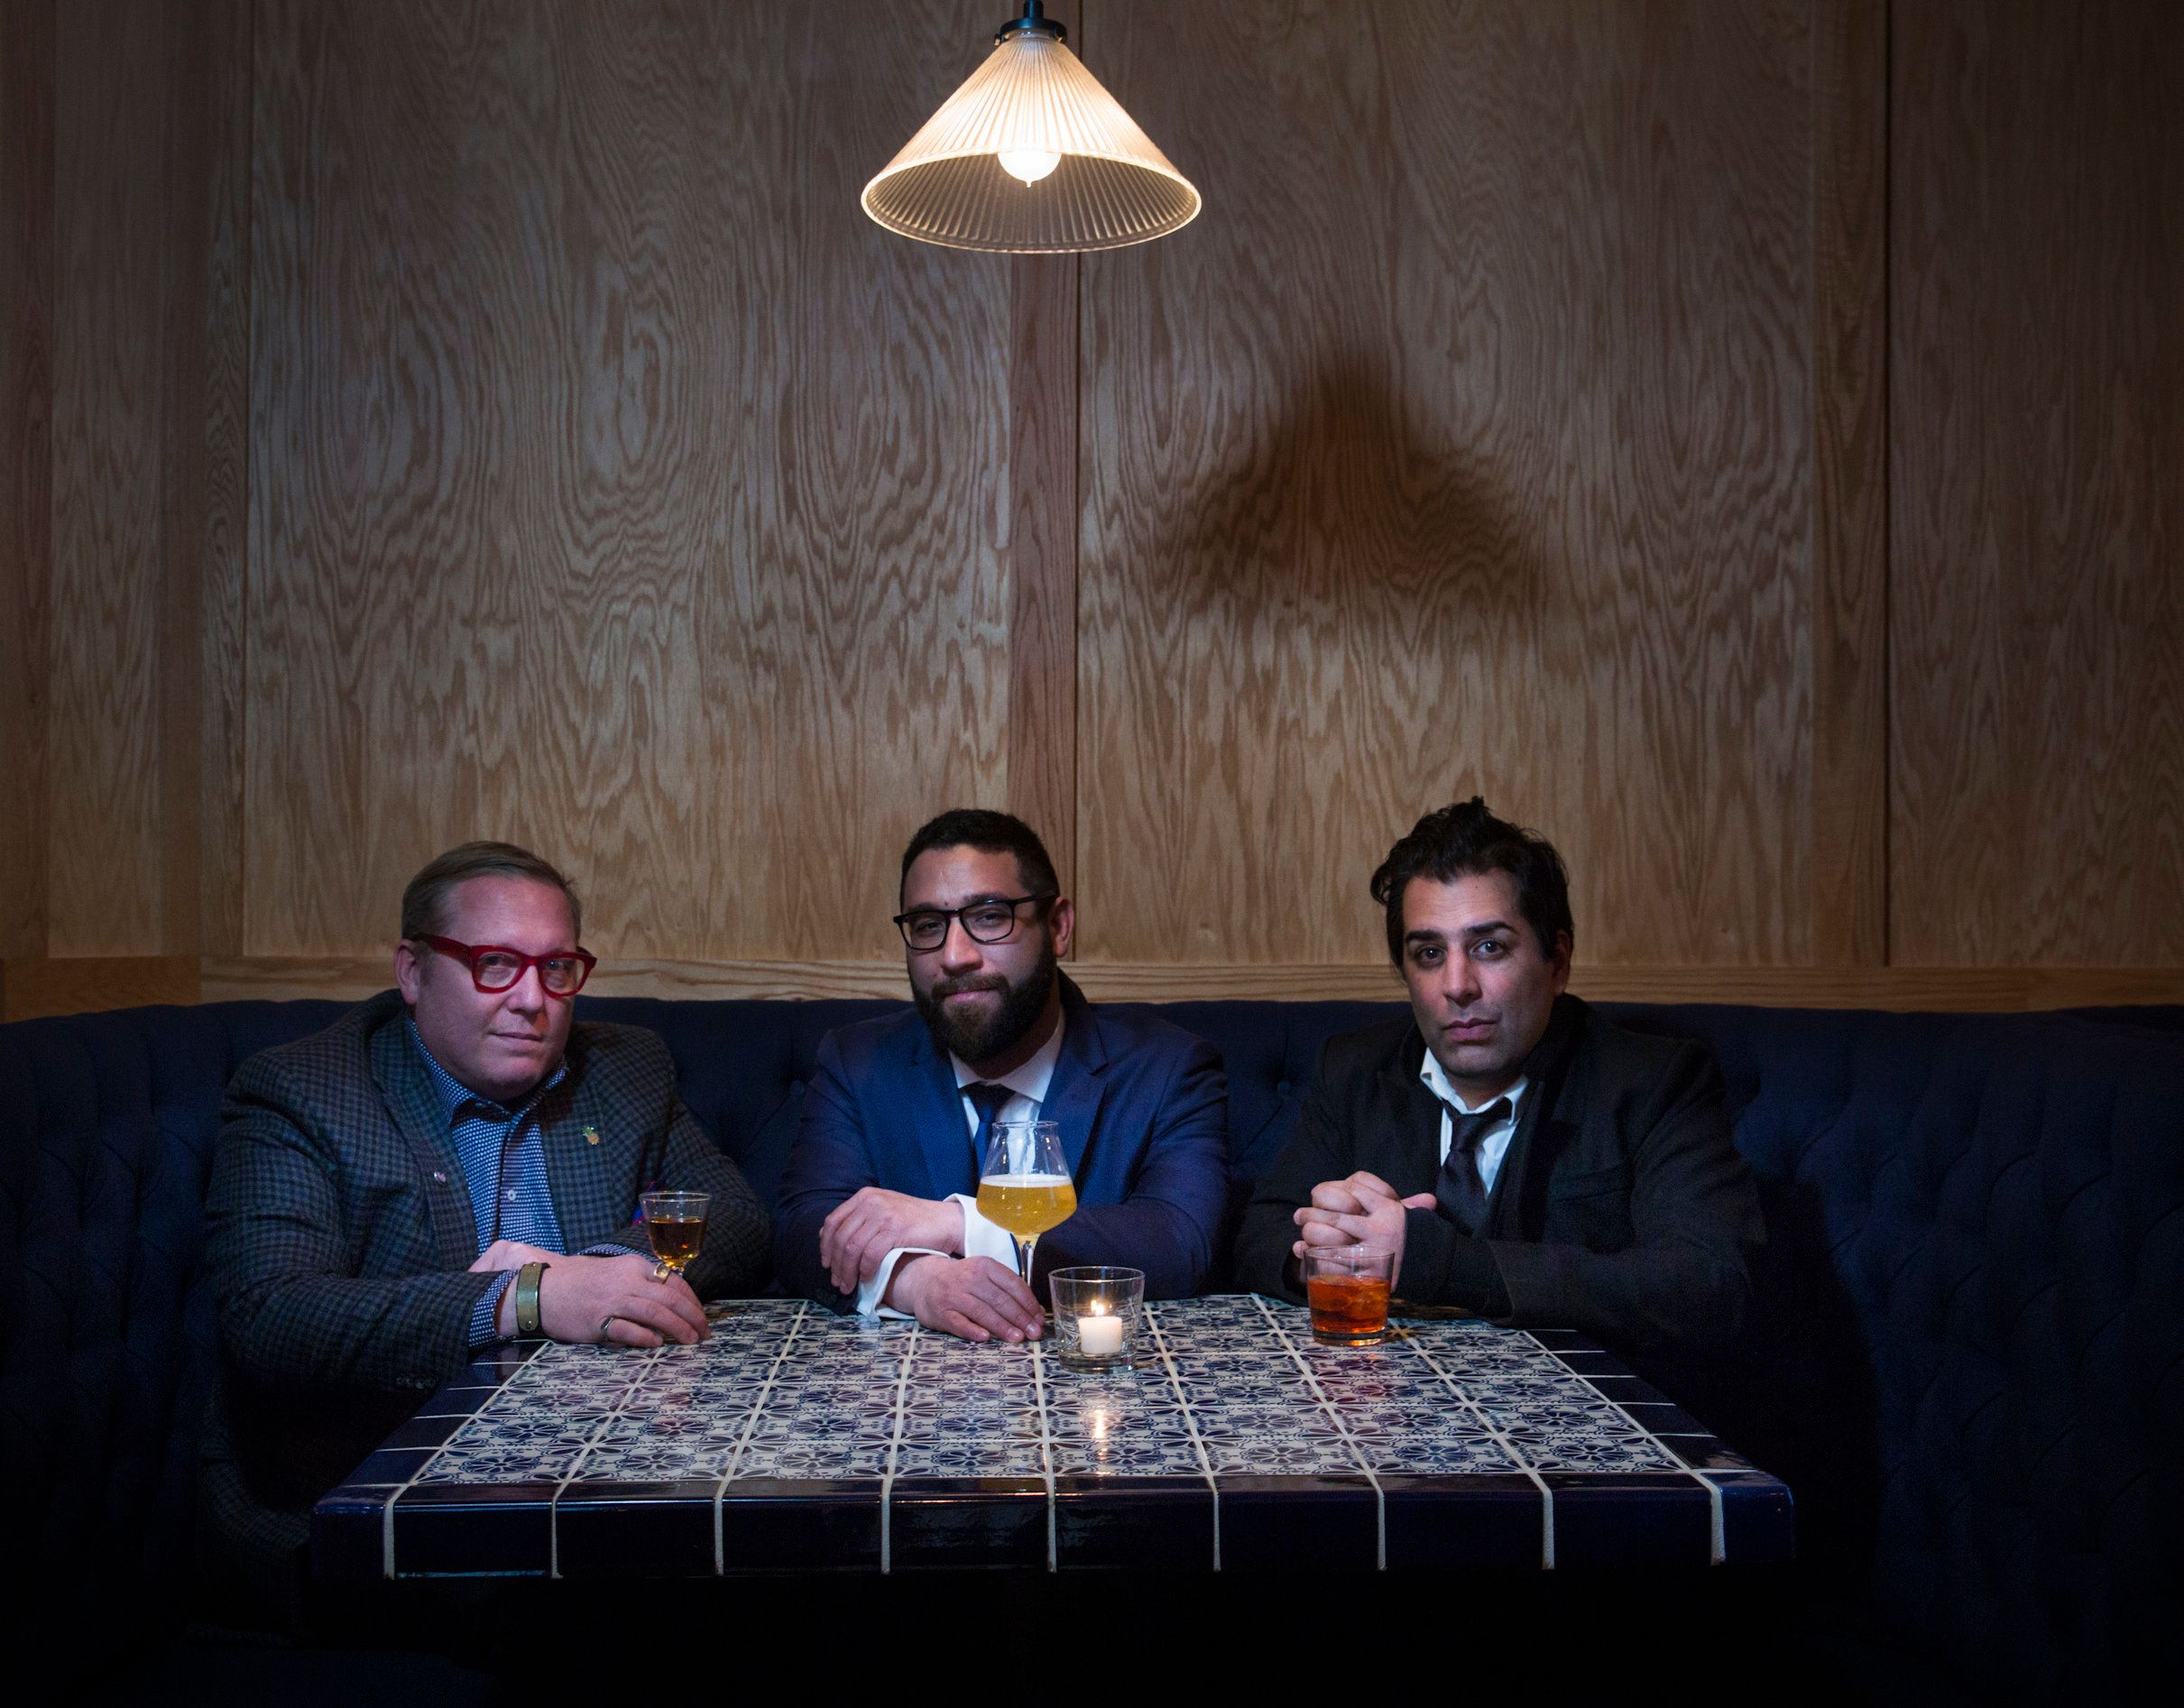 Ravi DeRossi, Sother Teague, and Max Green are opening aTrump protest themed bar near Cooper Union.